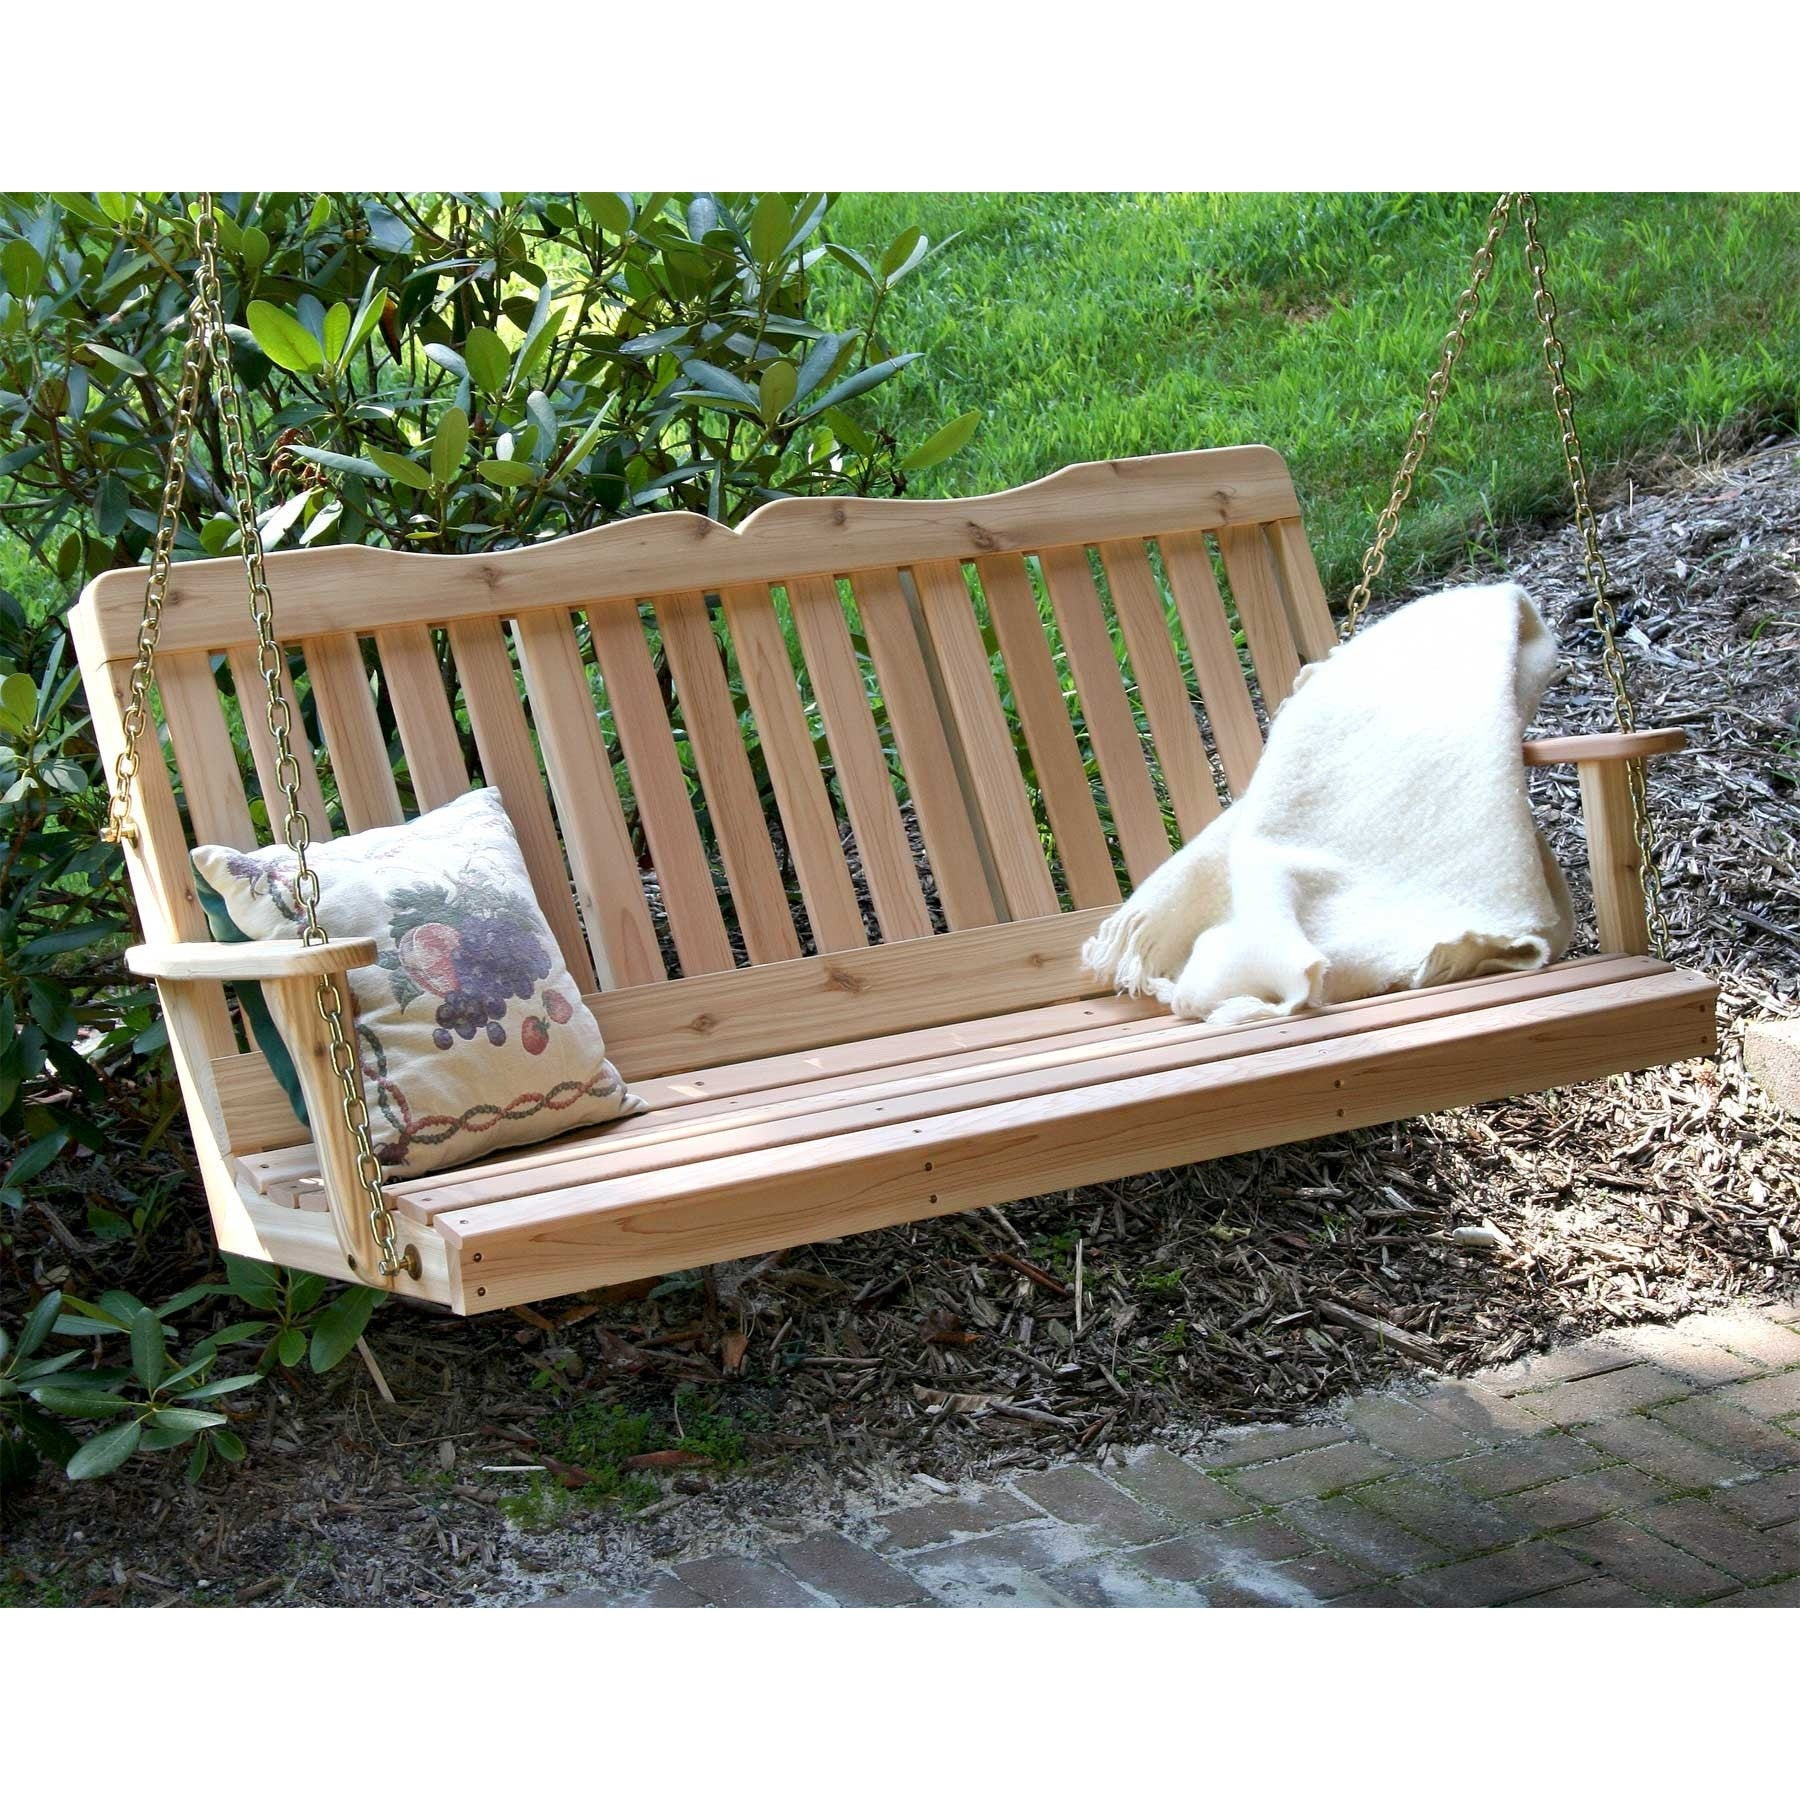 Cedar Countryside Porch Swing Creekvine Designs - Swings and More